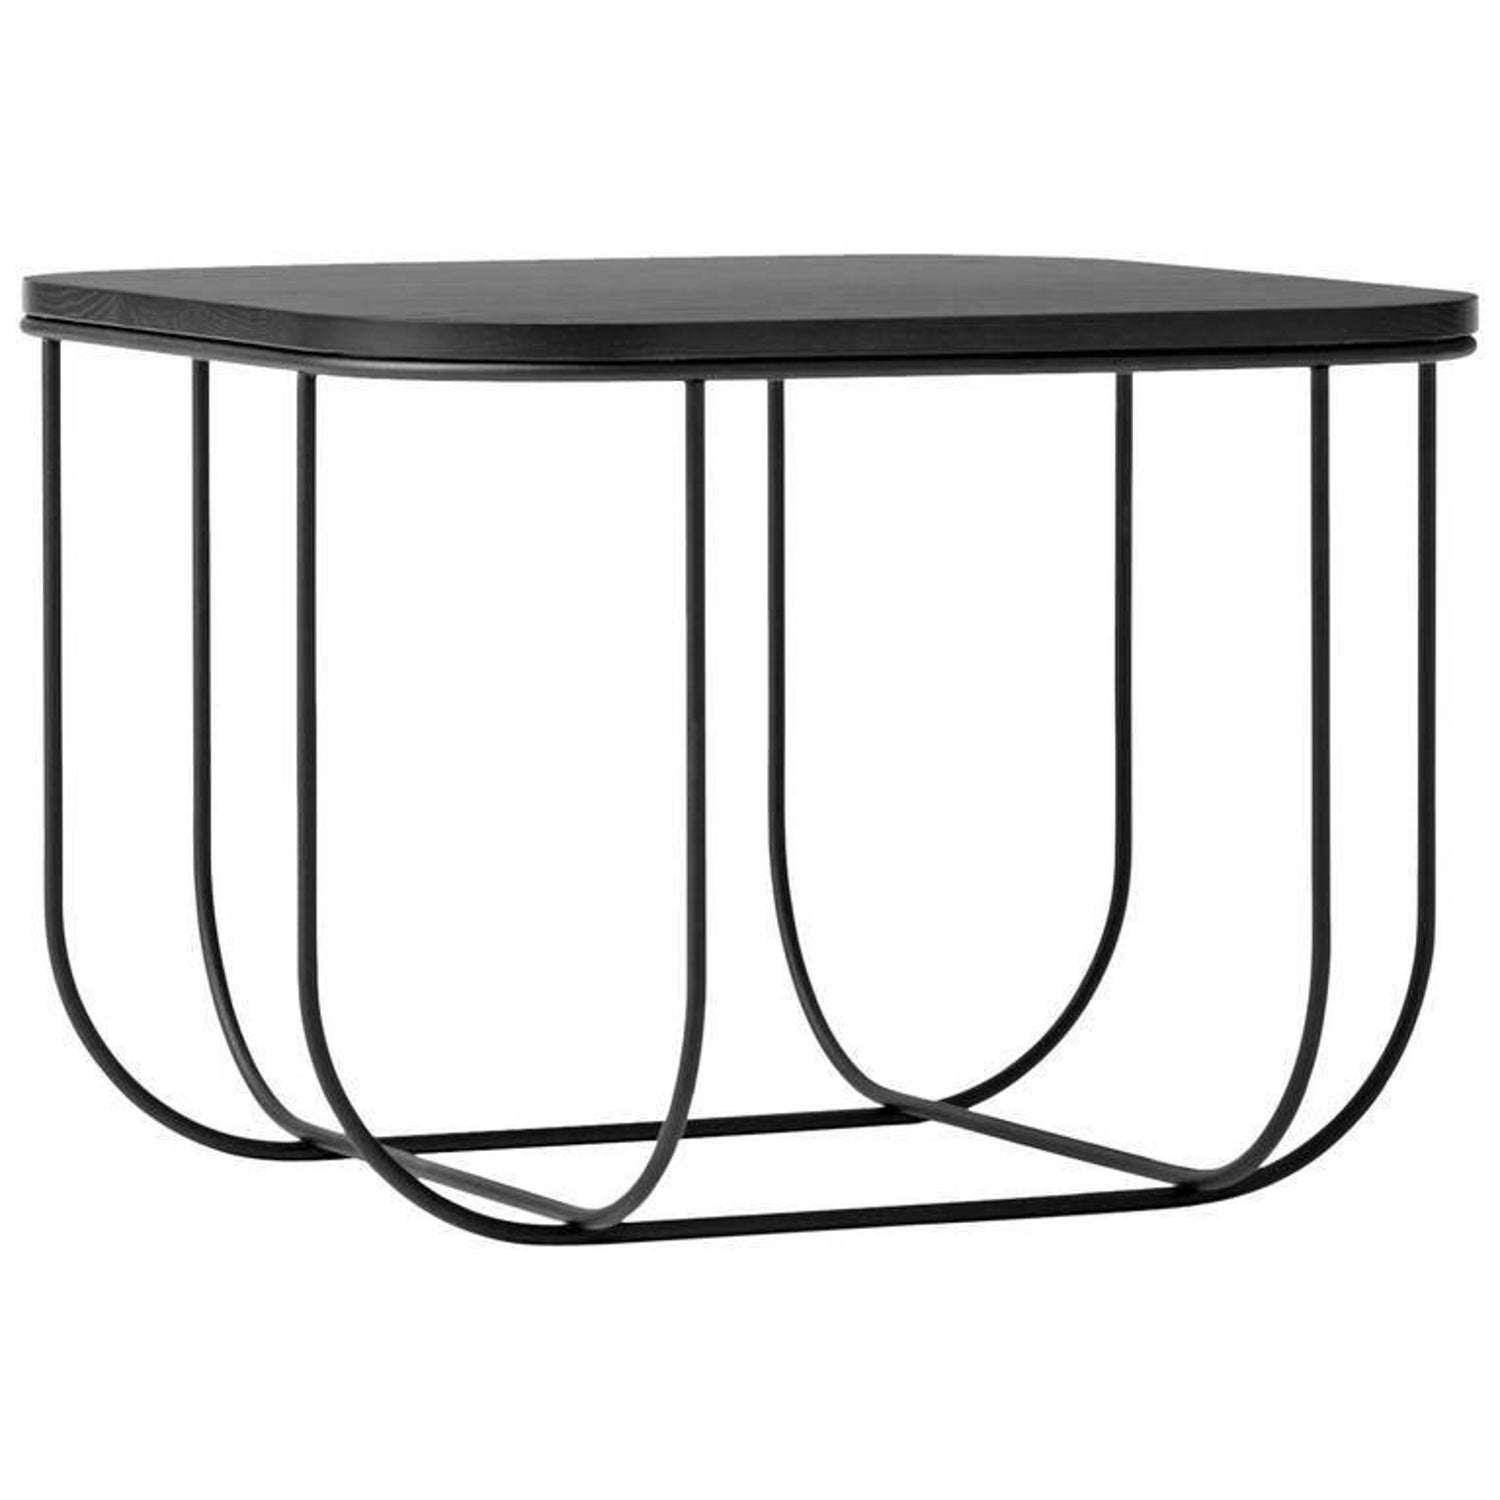 Black metal side table - Cage Side Table By Form Us With Love Black Metal Frame With Dark Ash Top